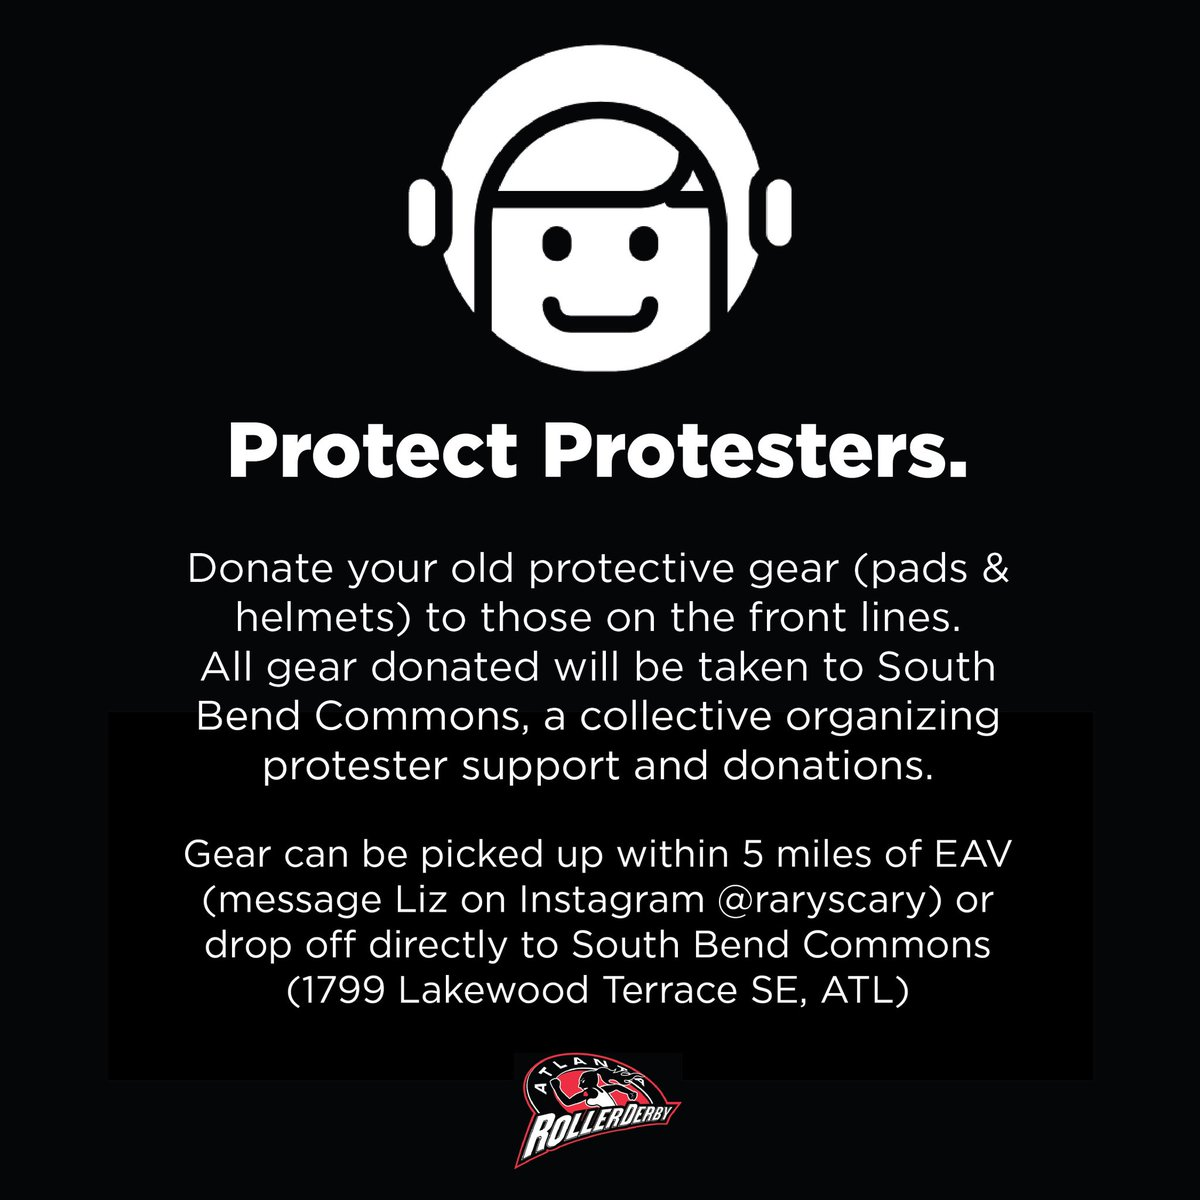 Got old gear laying around? Well we have a good place to donate it. #BlackLivesMatterATL #blacklivesmatterpic.twitter.com/jA57tFAqcz